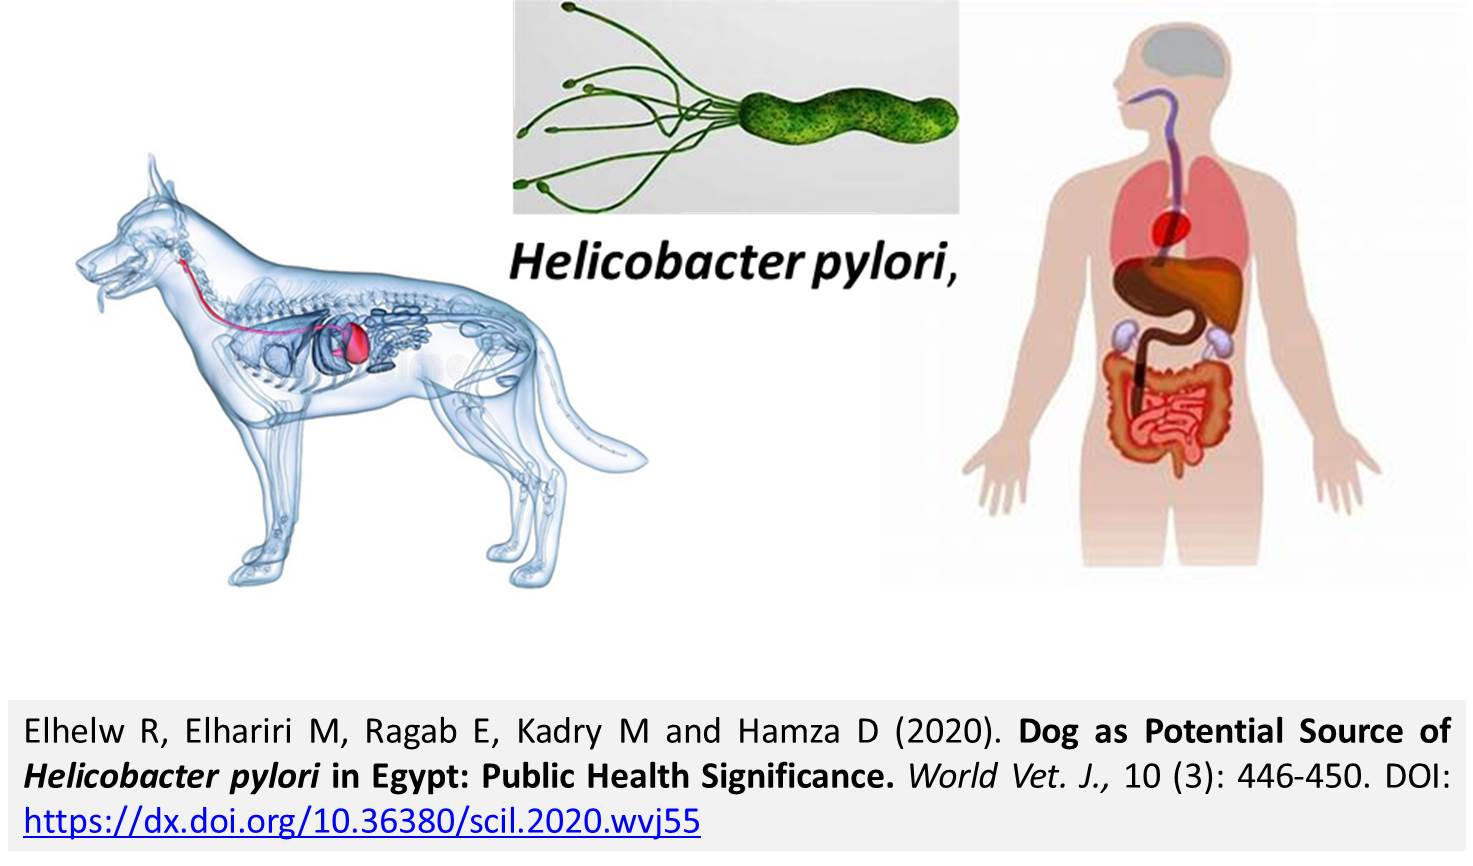 1300-Dog_Source_of_Helicobacter_pylori_in_Egypt